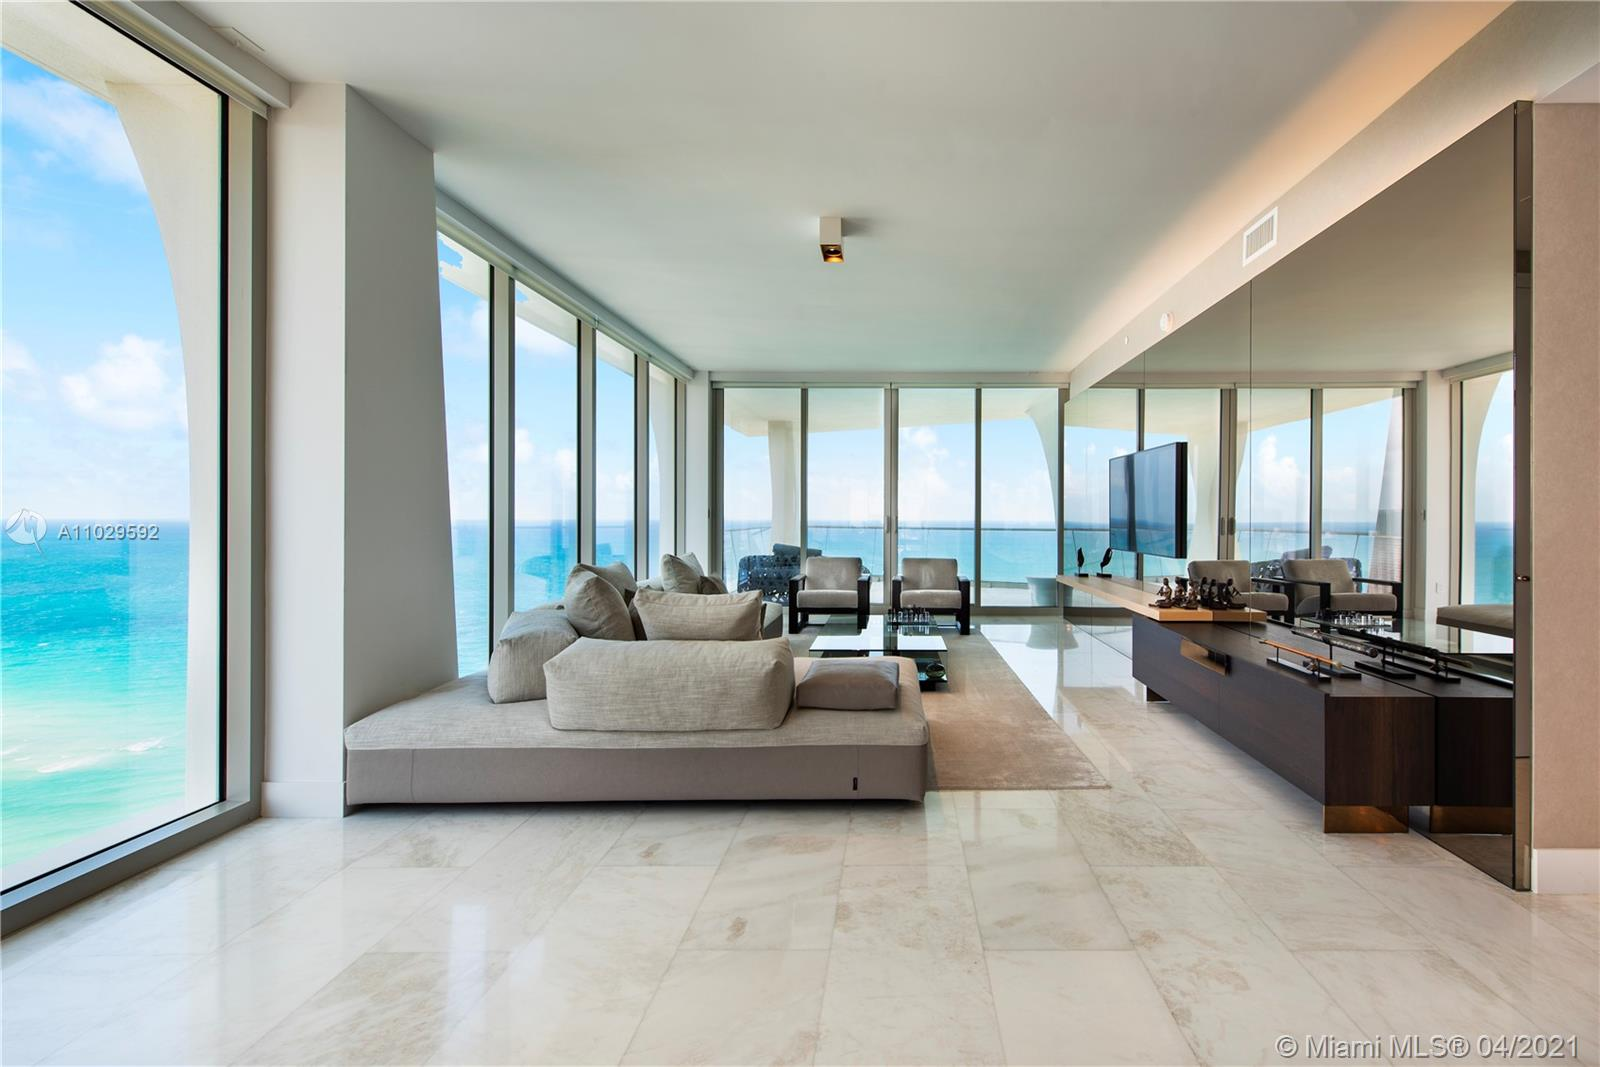 Breathtaking corner flow-thru 4 bedrooms 5.5 bathrooms residence with unobstructed views. This residence features an oversized terrace facing the ocean and private terraces in every room. This special floor plan has 2 bedrooms facing the ocean. Floor-to-ceiling windows boasting natural sunlight. Floors are marble and wood in bedrooms. Private elevator with custom foyer. This residence was the developer model unit and is ready to move in. Finished with the highest quality materials, no expense was spared. Kitchen has Snaidero cabinets and Gaggeanau appliances. Jade Signature features 3 floors of world-class amenities such as on-sight dining, fully serviced spa, salon and outdoor water therapy terrace; fitness facilities with sunset yoga deck, Pilates/spin studios; teen lounge and kids room.